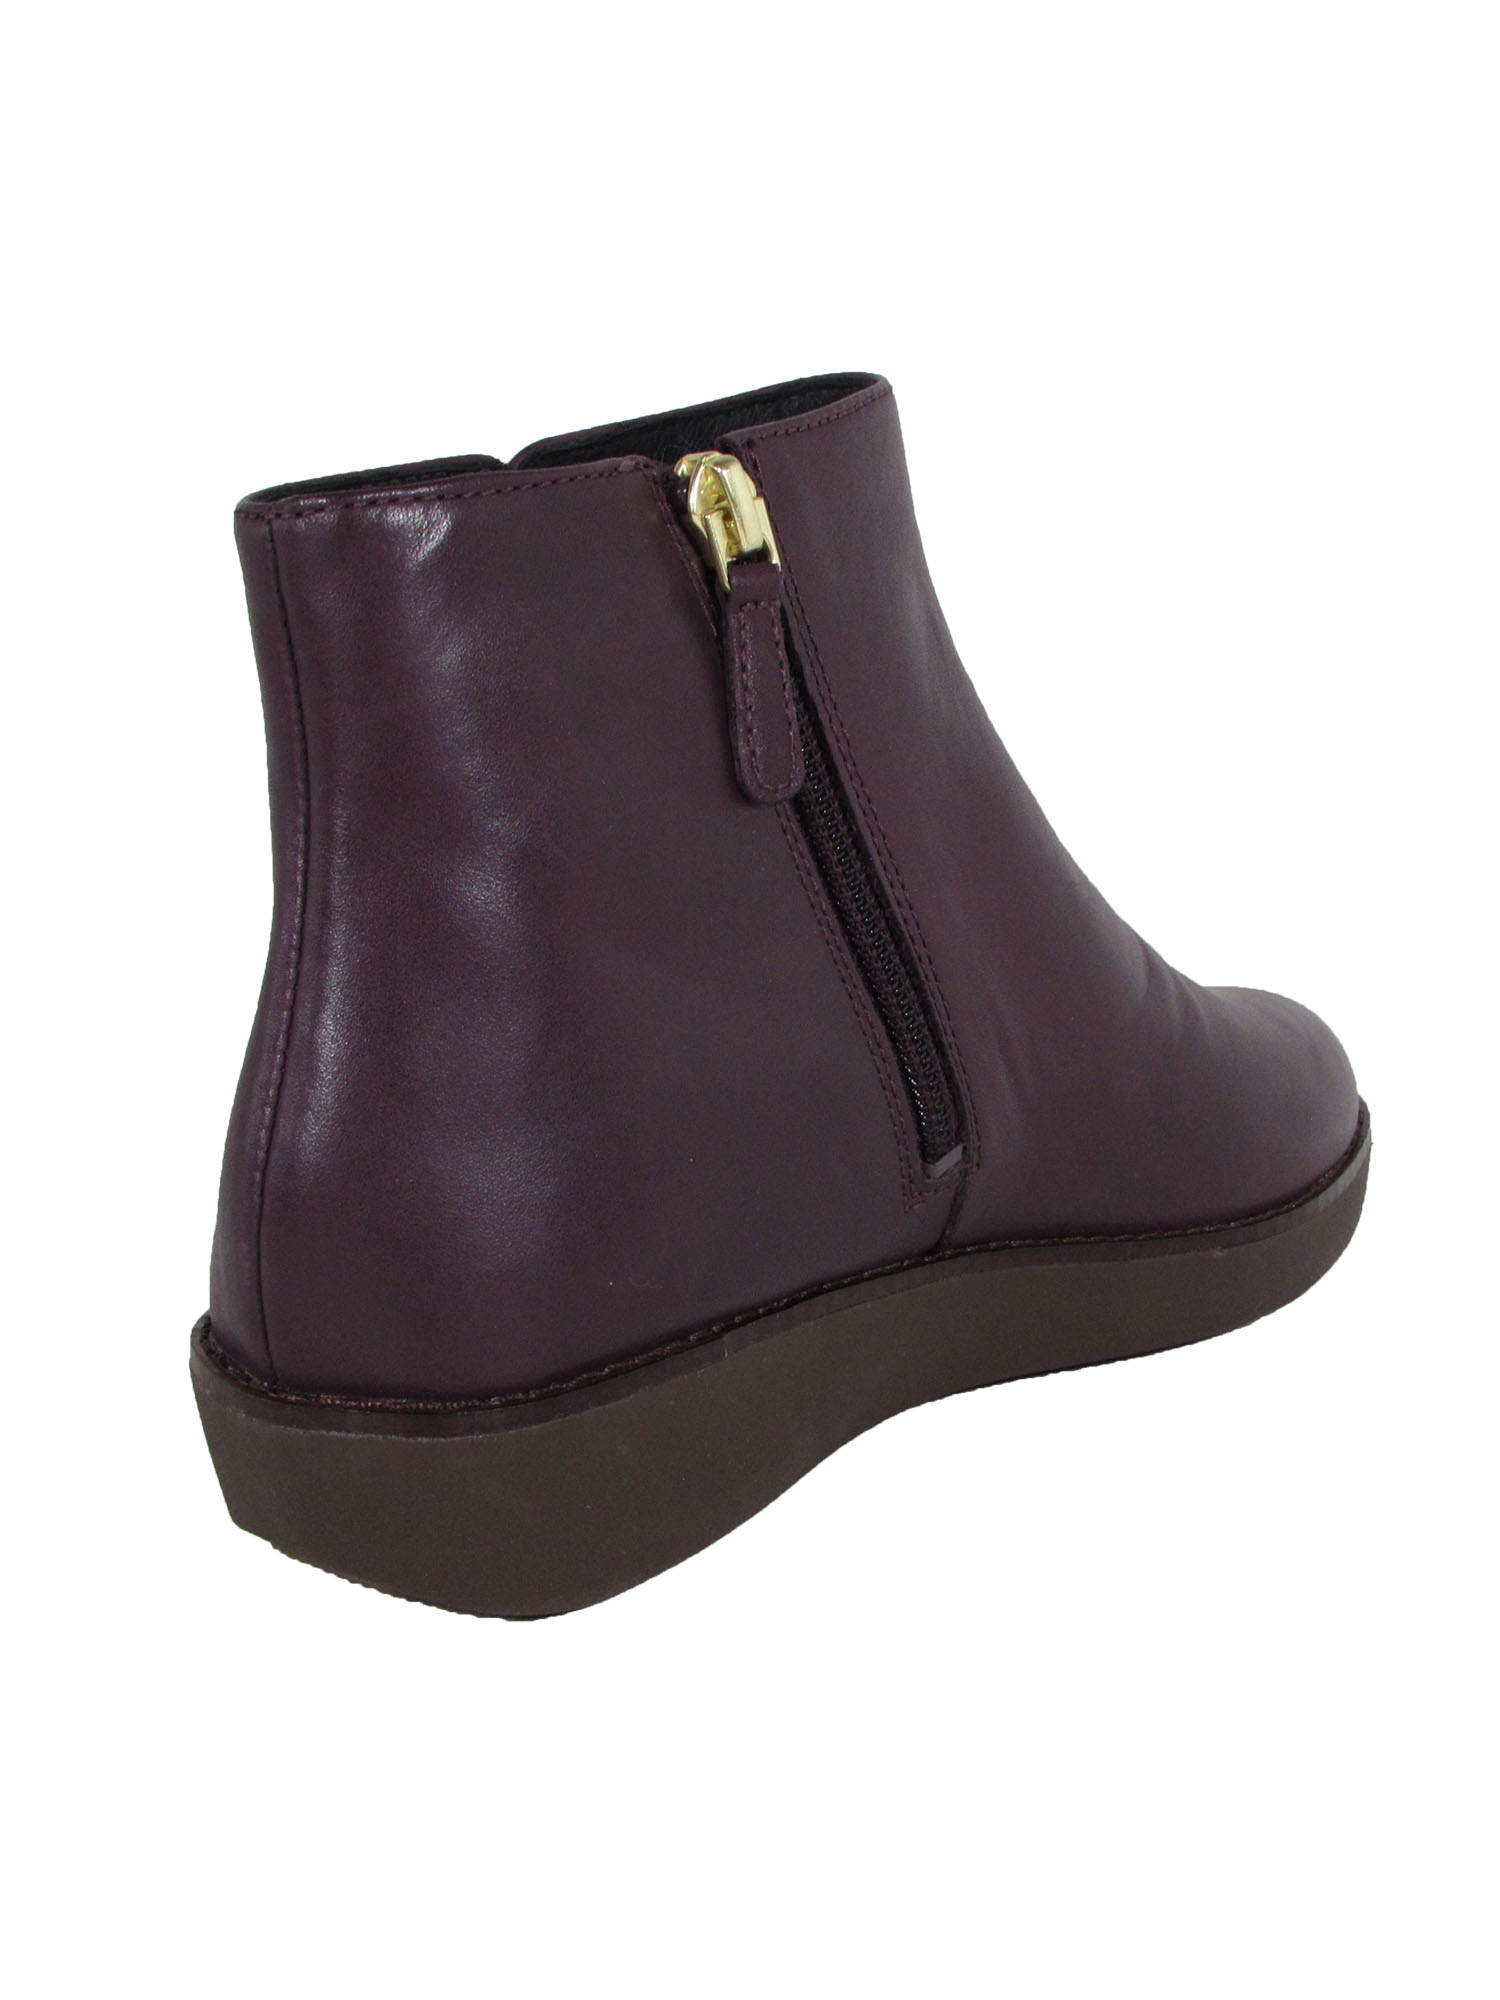 Fitflop-Womens-Ziggy-Zip-Leather-Bootie-Shoes-Deep-Plum-US-6-5 thumbnail 3